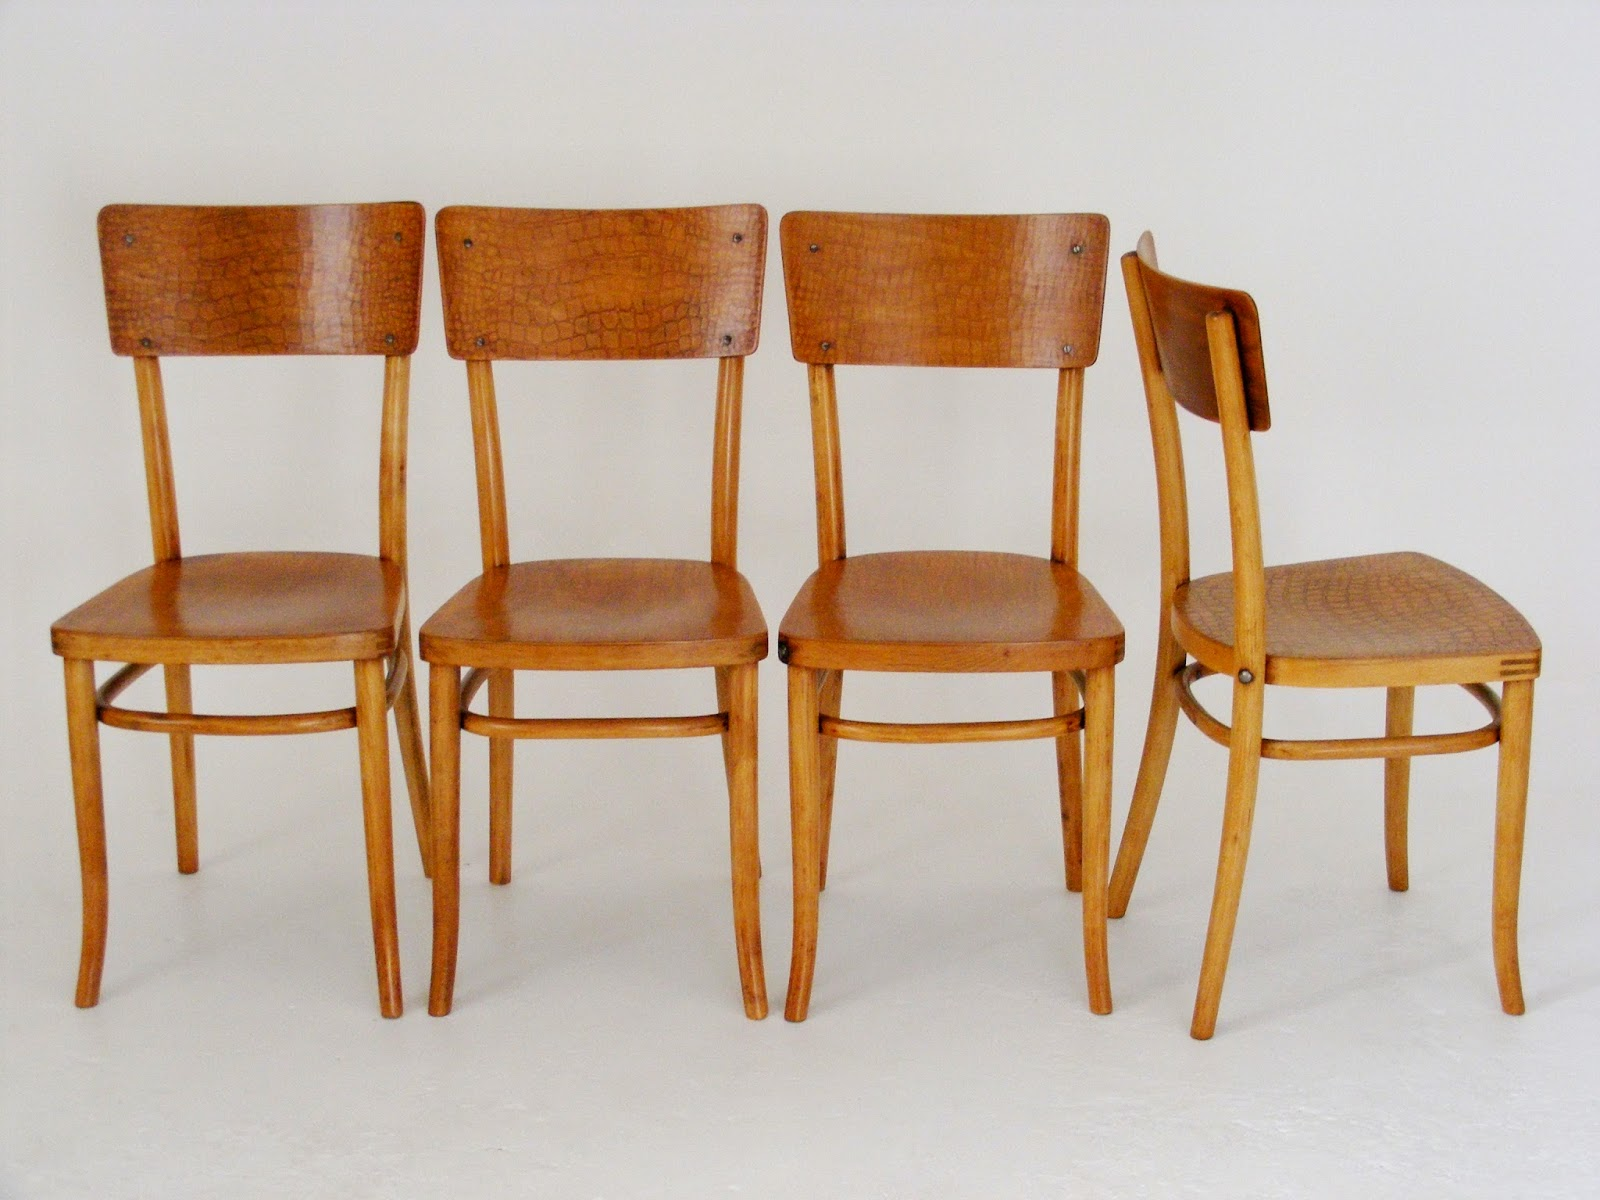 Set of 4 wooden Mid-Century chairs. Manufactured by u0027Mundusu0027 and Ju0026J Kohn Ltd Poland (Fabrique en Polange) with original makers mark & VAMP FURNITURE: March 2014